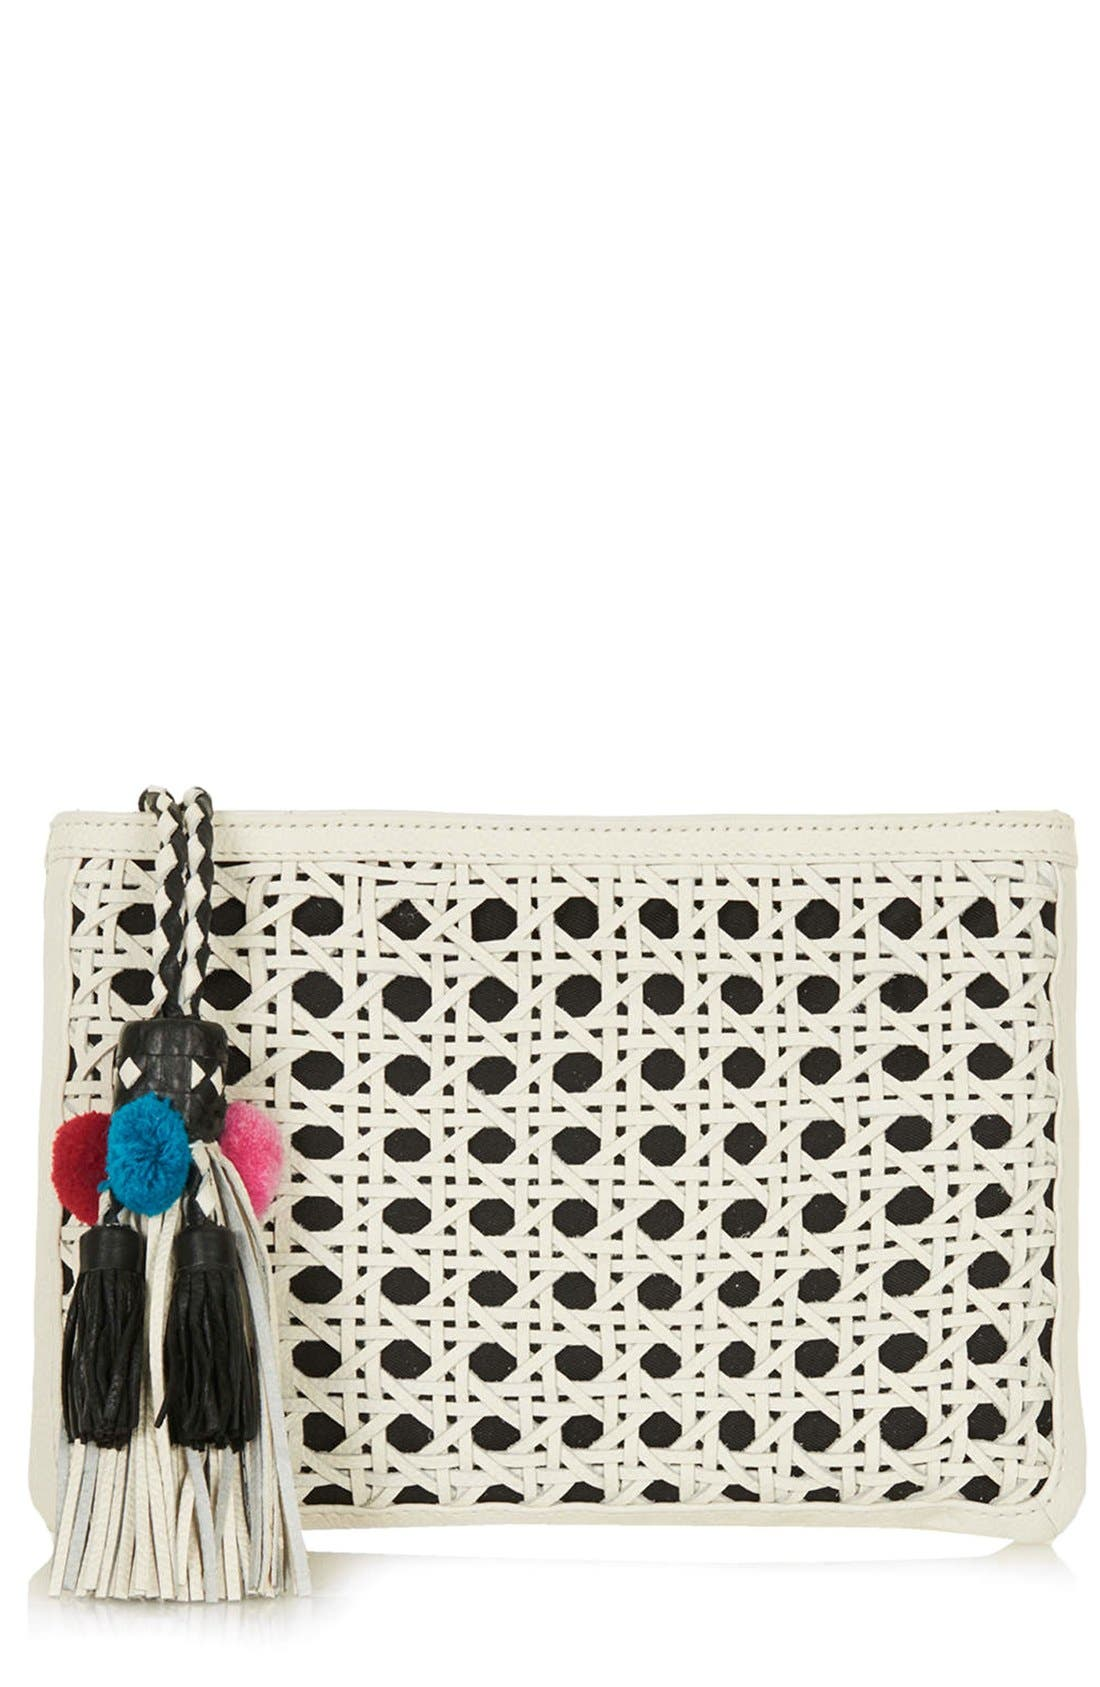 Main Image - Topshop Tassel Textured Leather Clutch